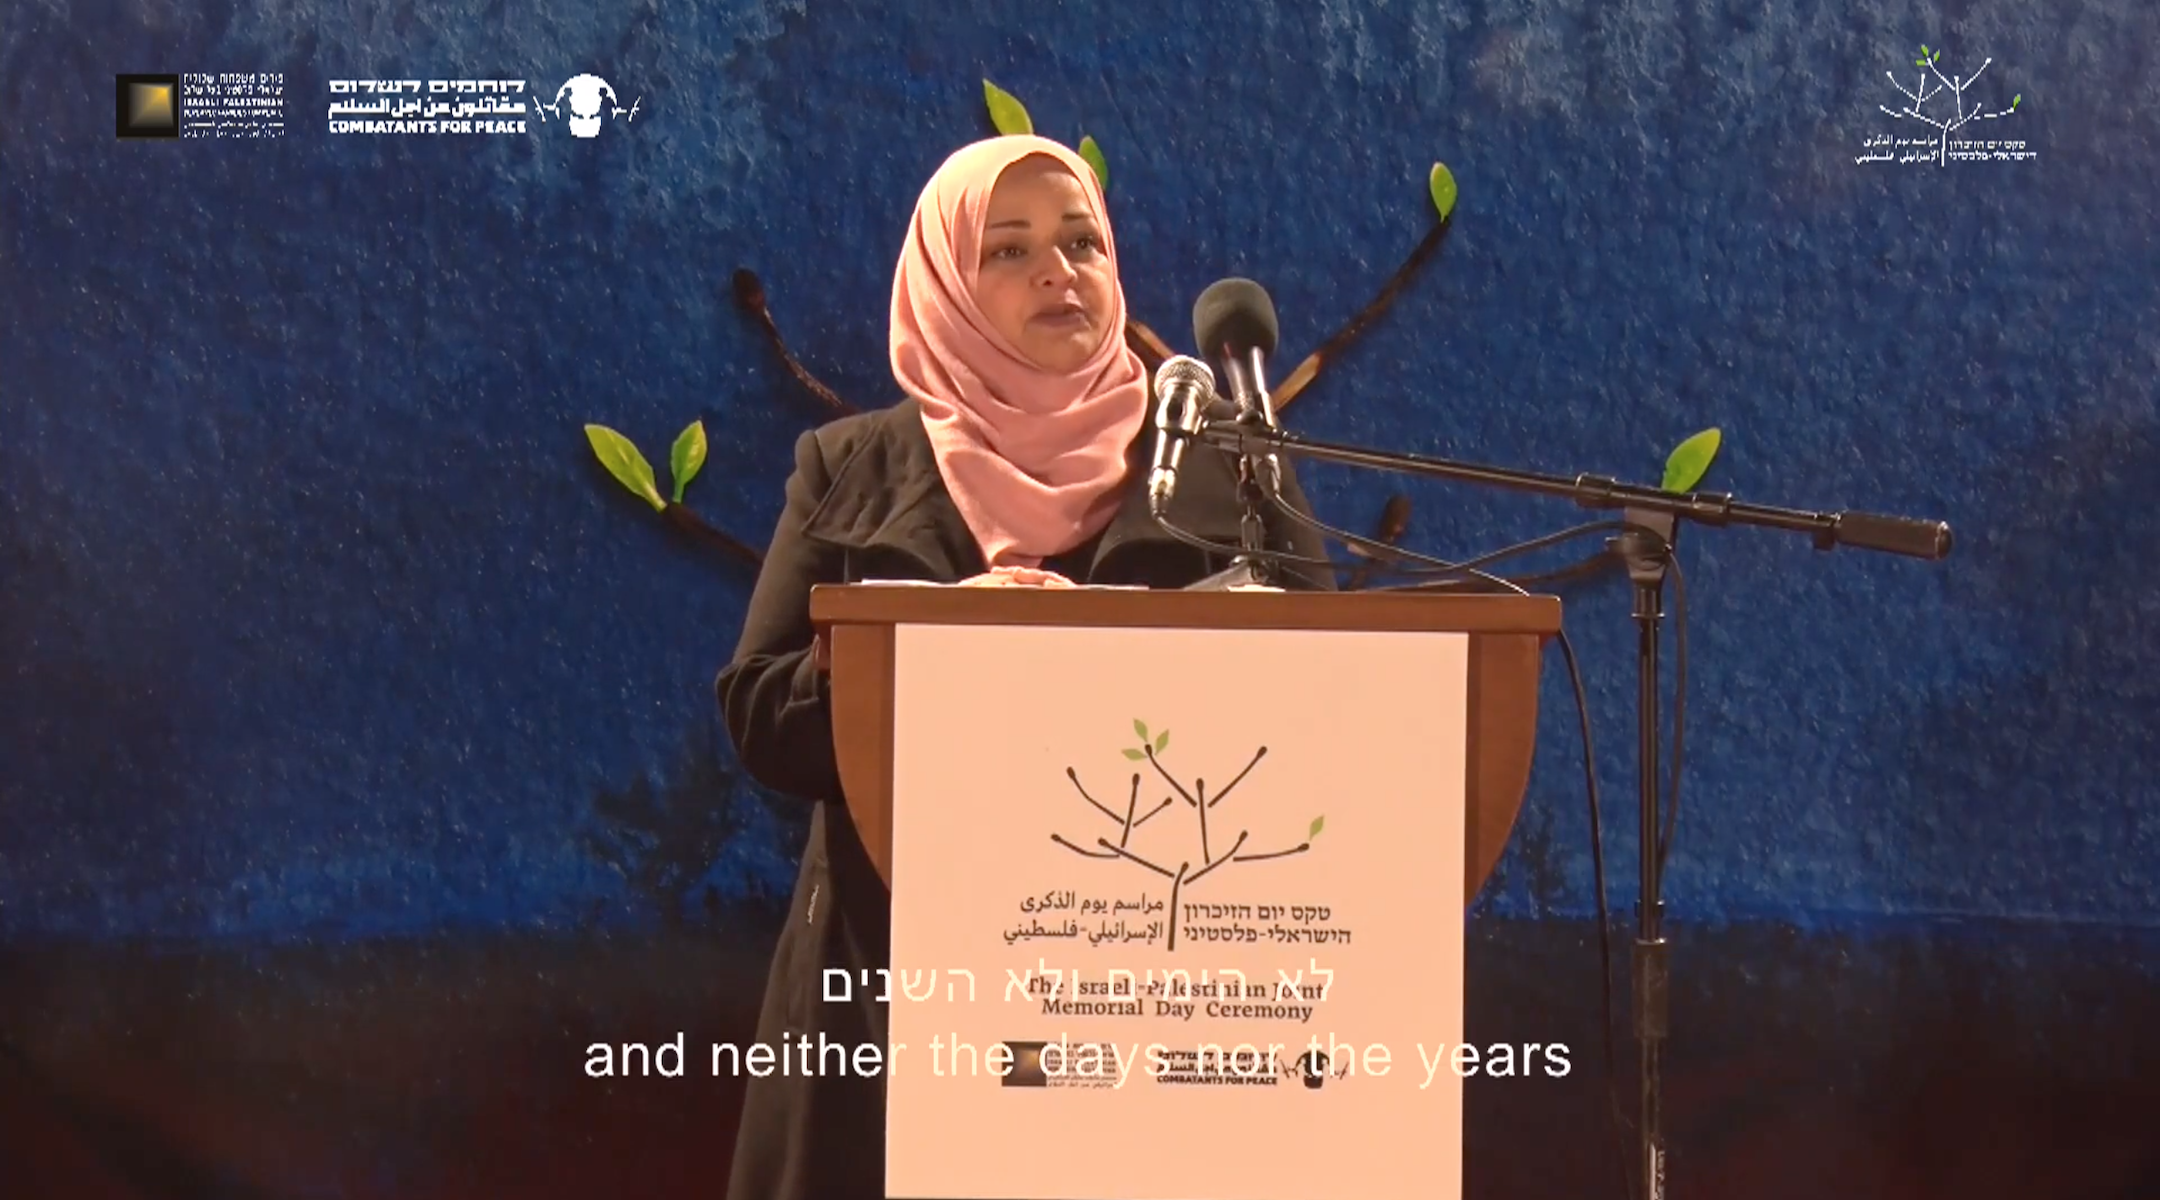 Layla Alsheikh, whose six-month old baby died when the Israel Defense Forces sprayed tear gas into her village, speaks at this year's joint Memorial Day ceremony. (Screen shot)